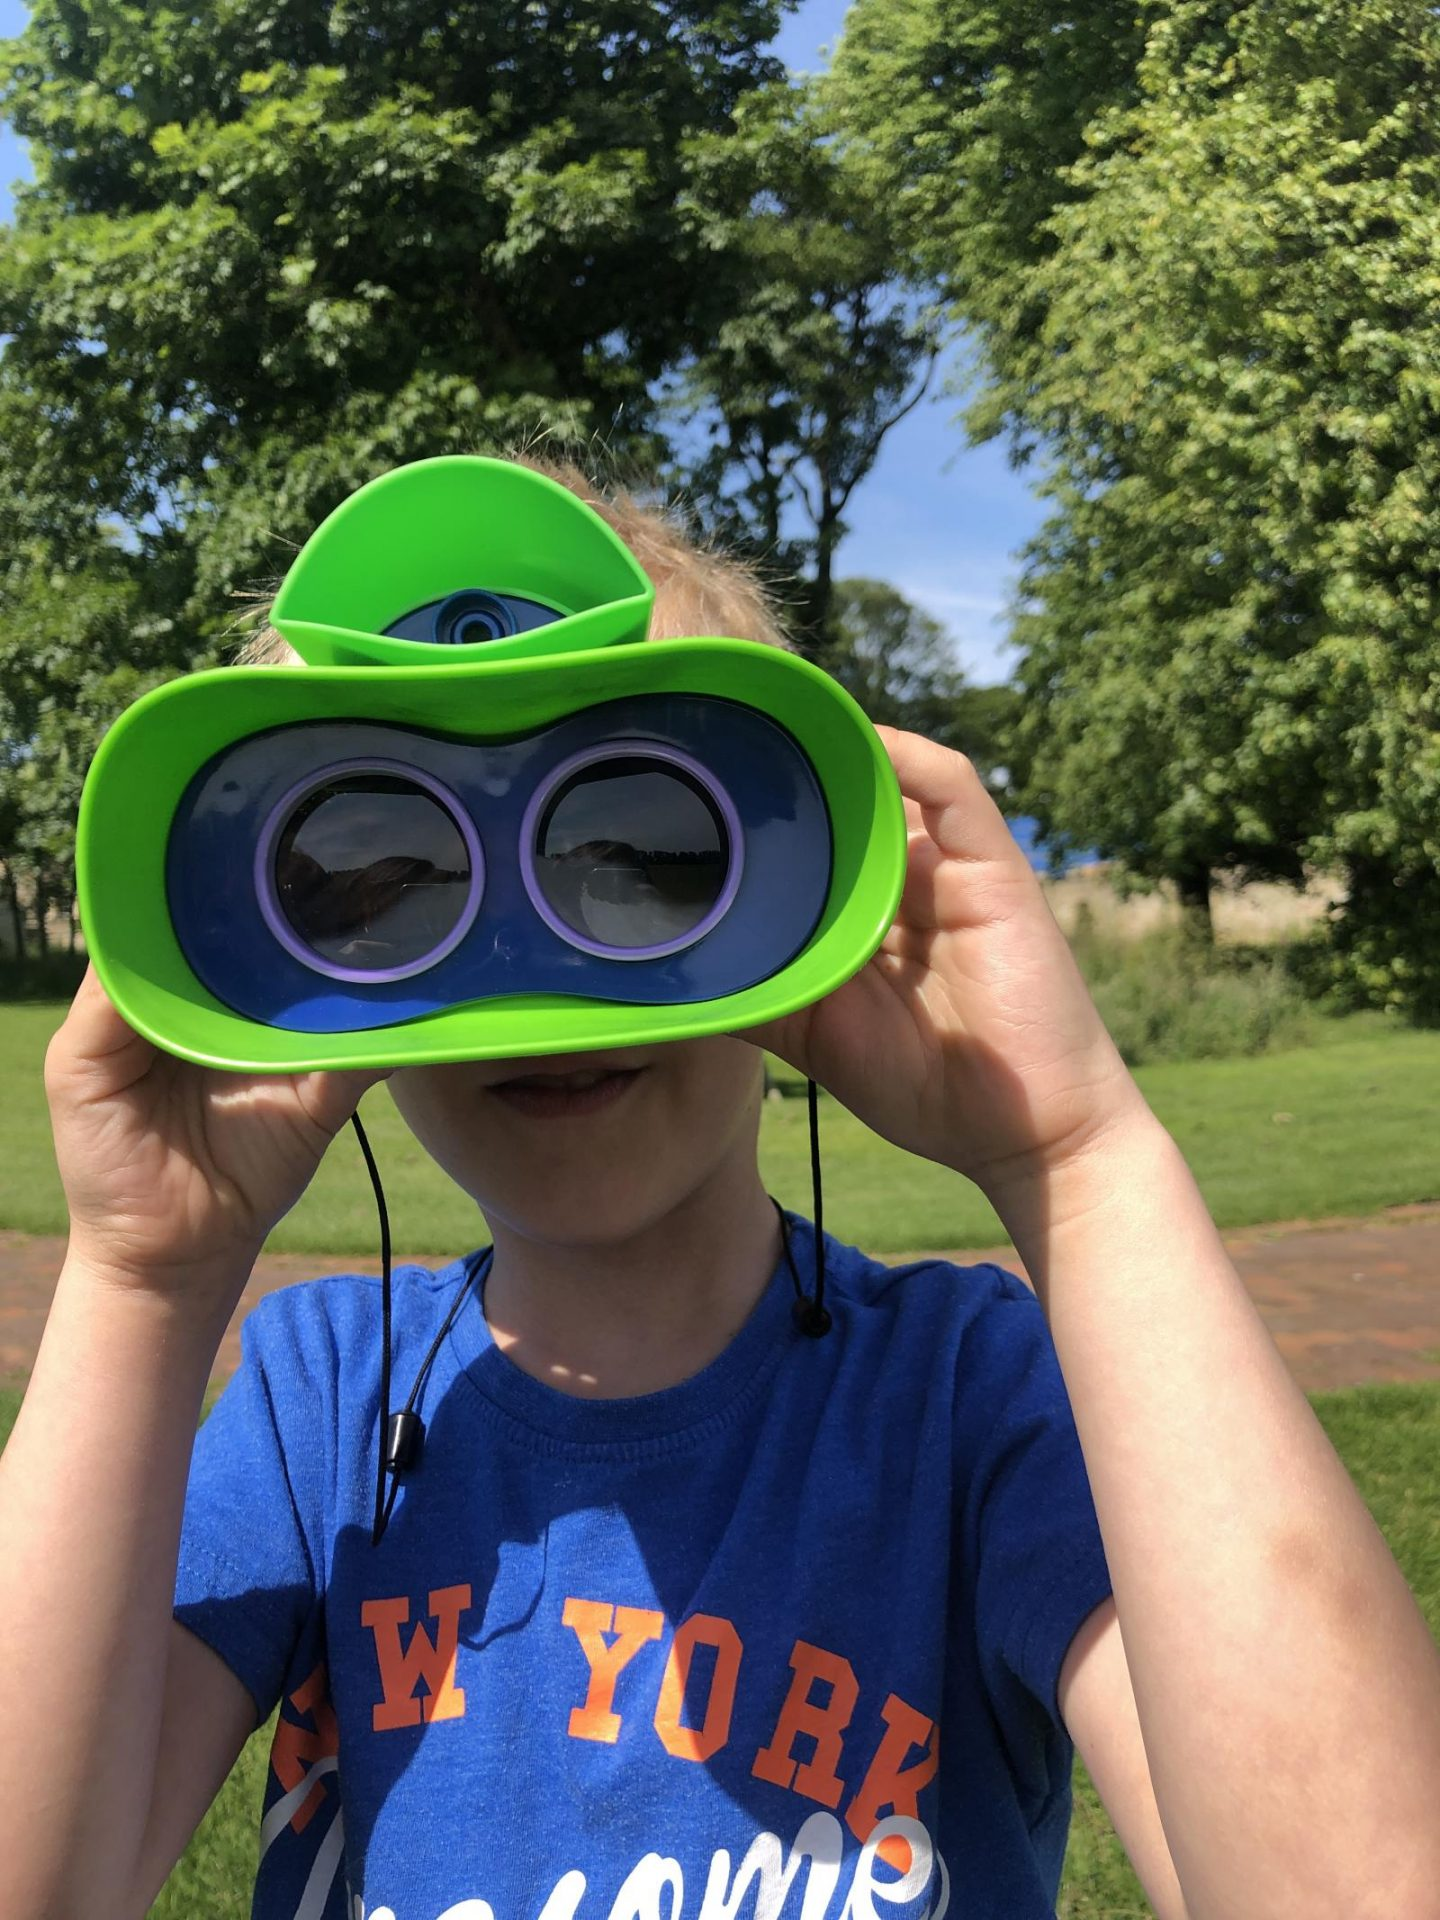 geosafari jr kidnoculars extreme from the front